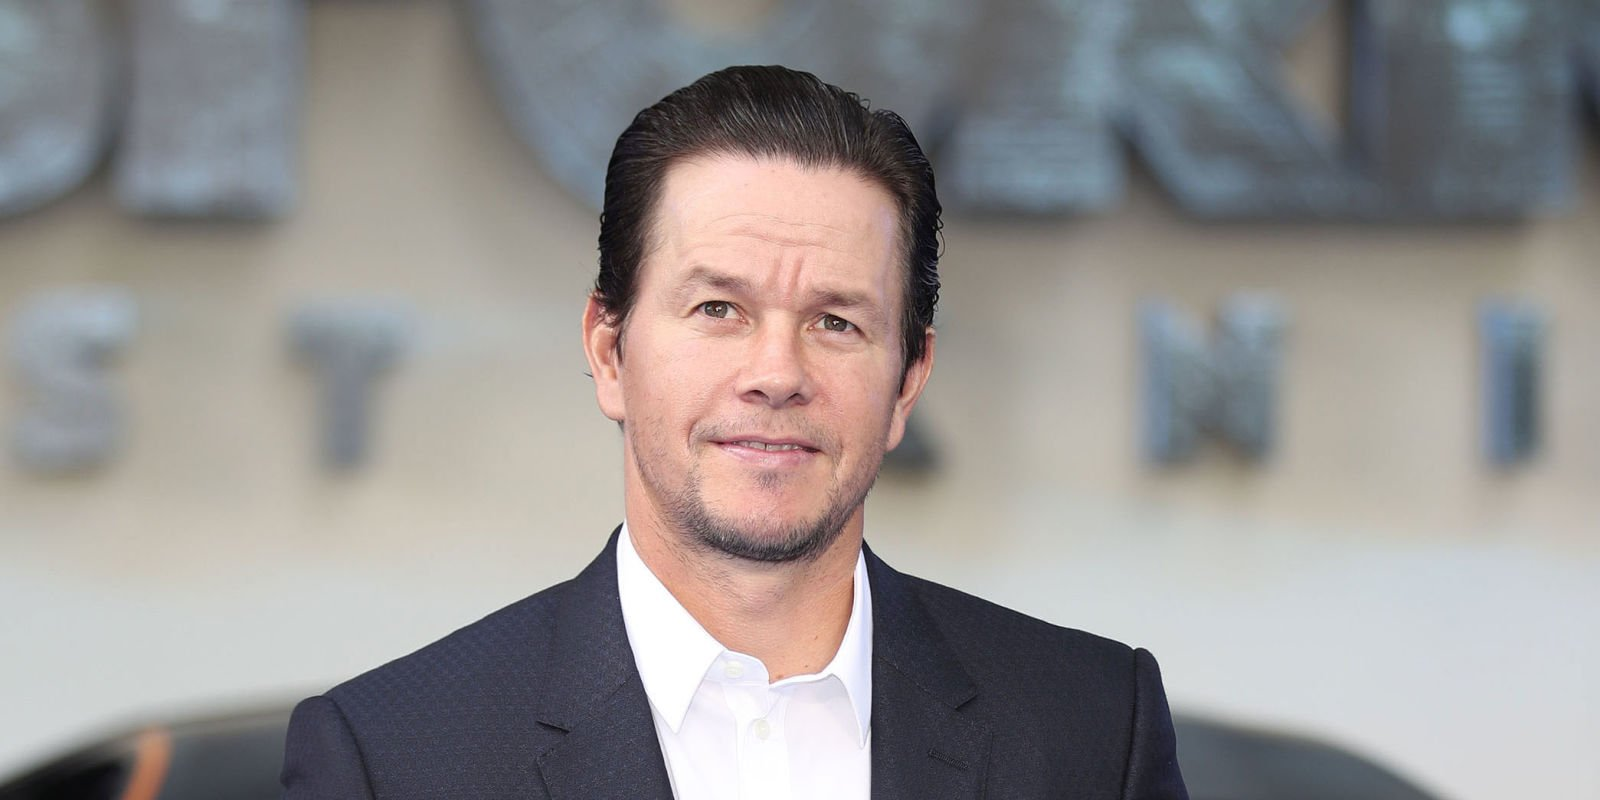 Mark Wahlberg donates $1.5 million reshoot fee to Time's Up movement in Michelle Williams's name